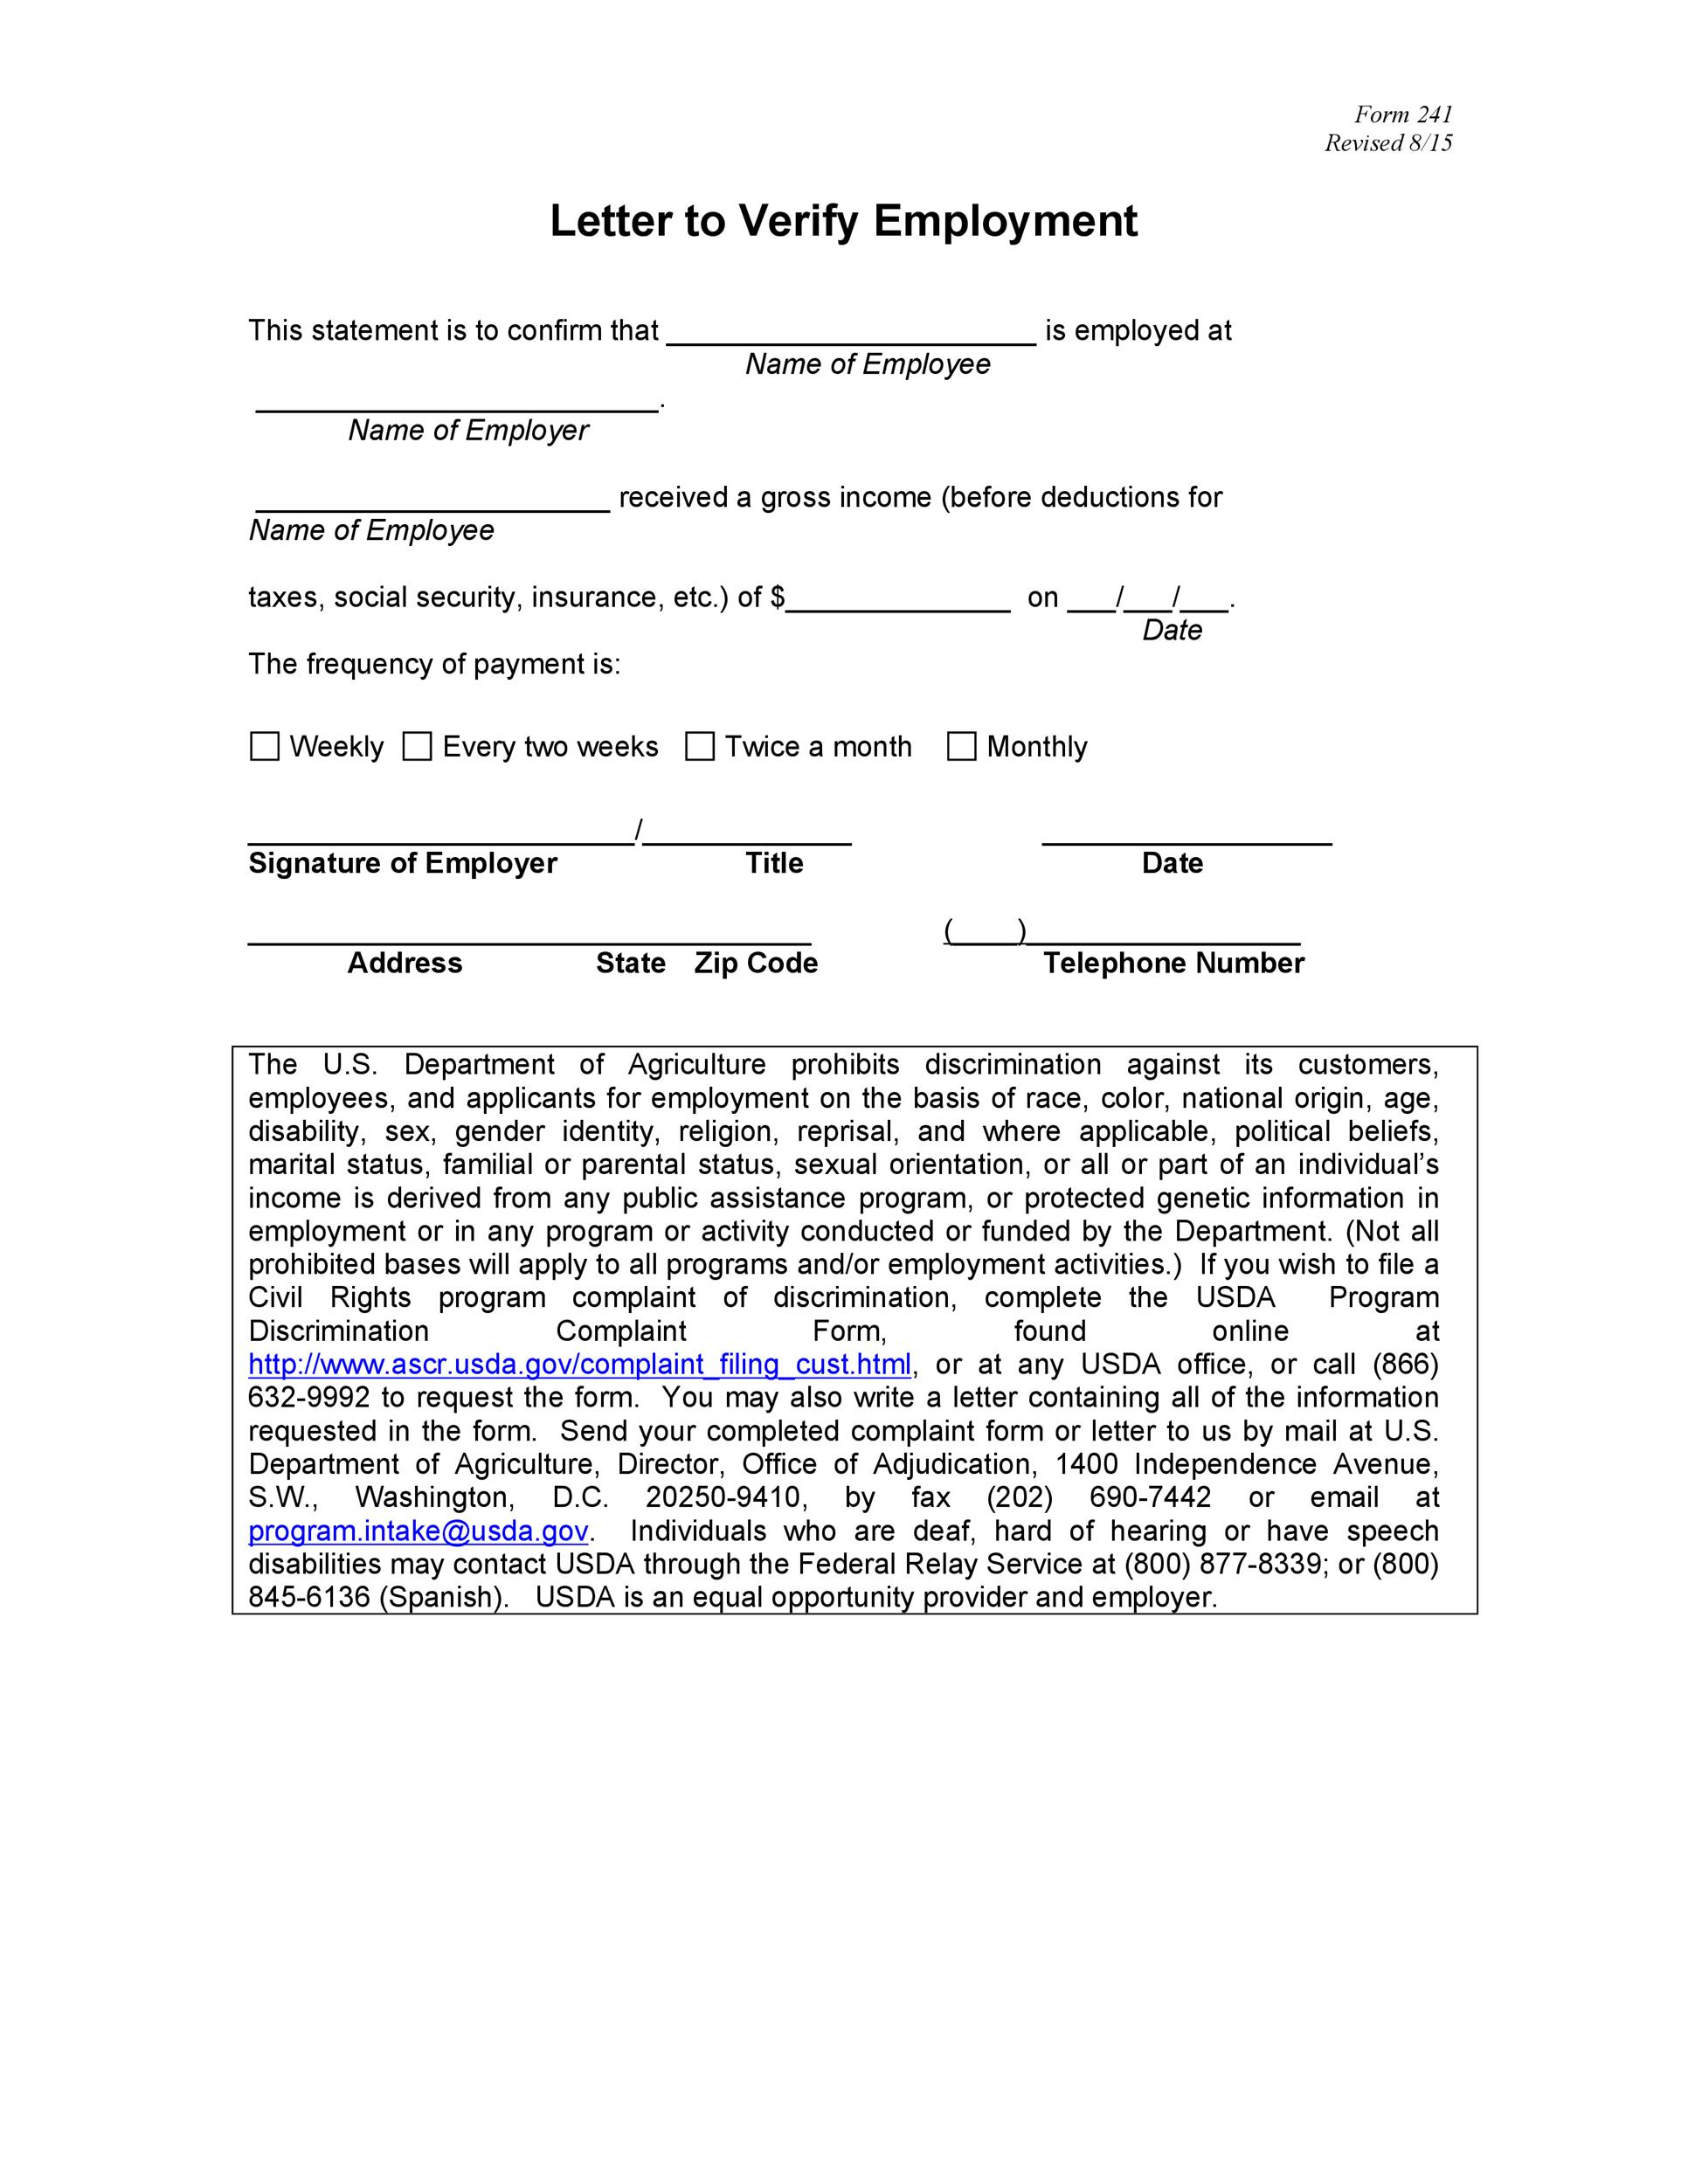 40 proof of employment letters verification forms samples printable proof of employment letter template 07 altavistaventures Image collections